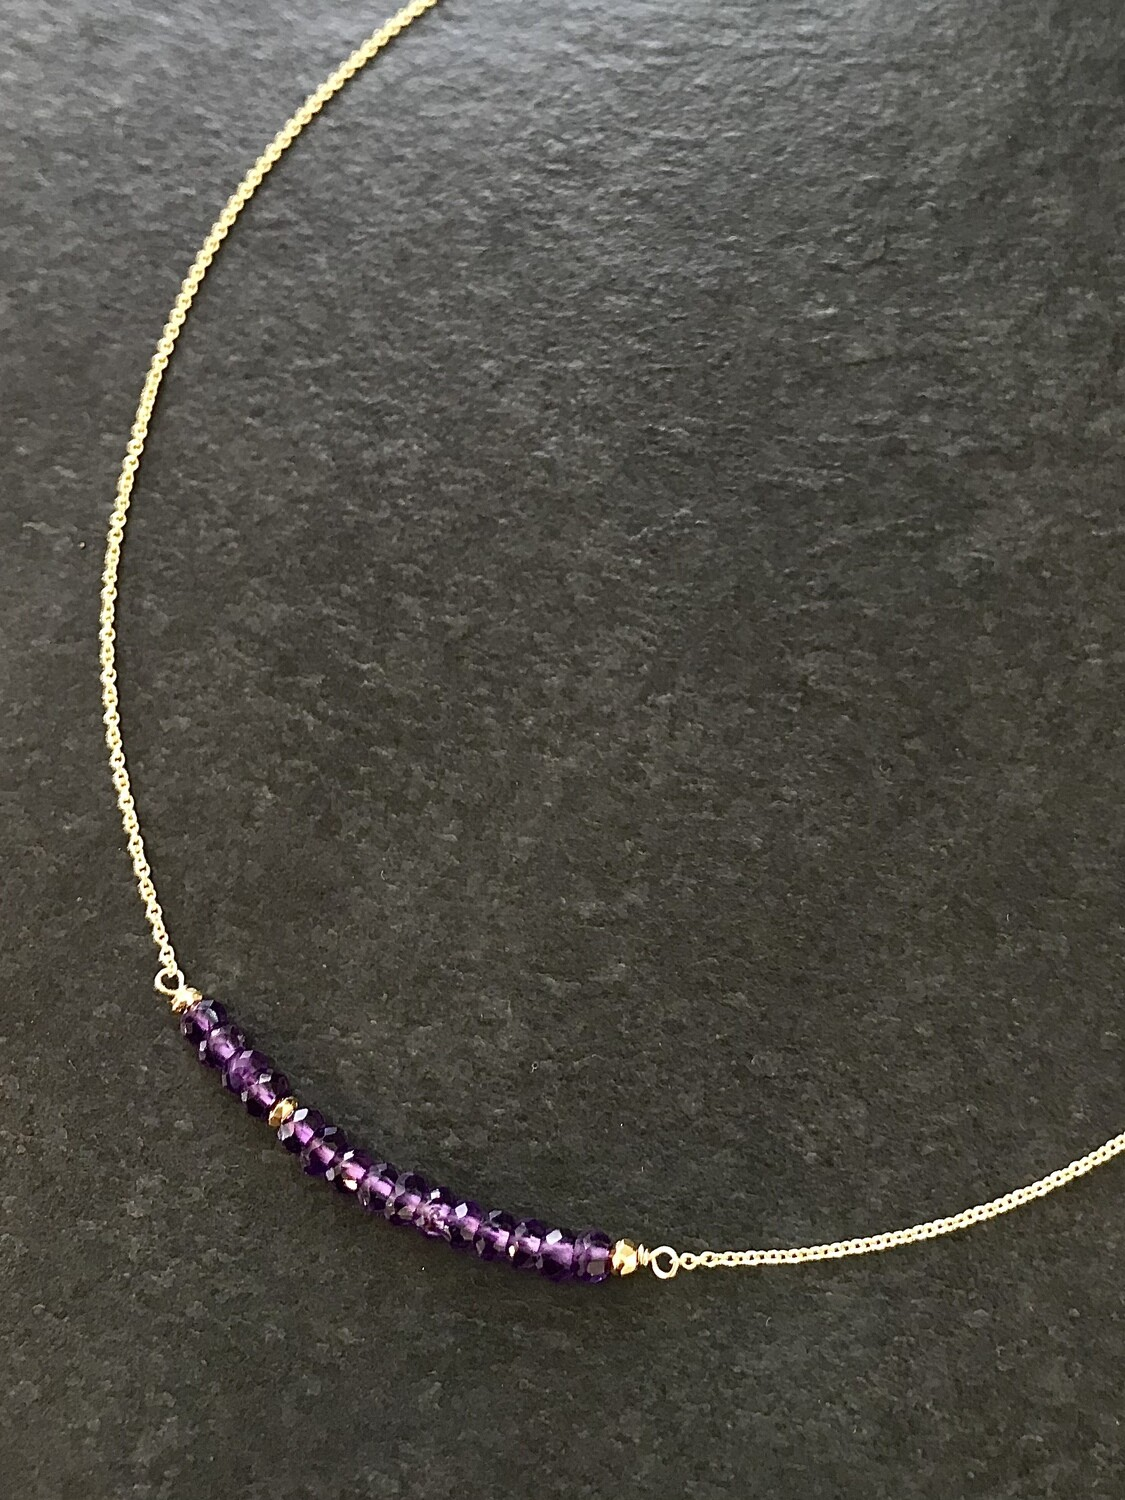 Amethyst & Pyrite Iris Necklace - GDFDSN2